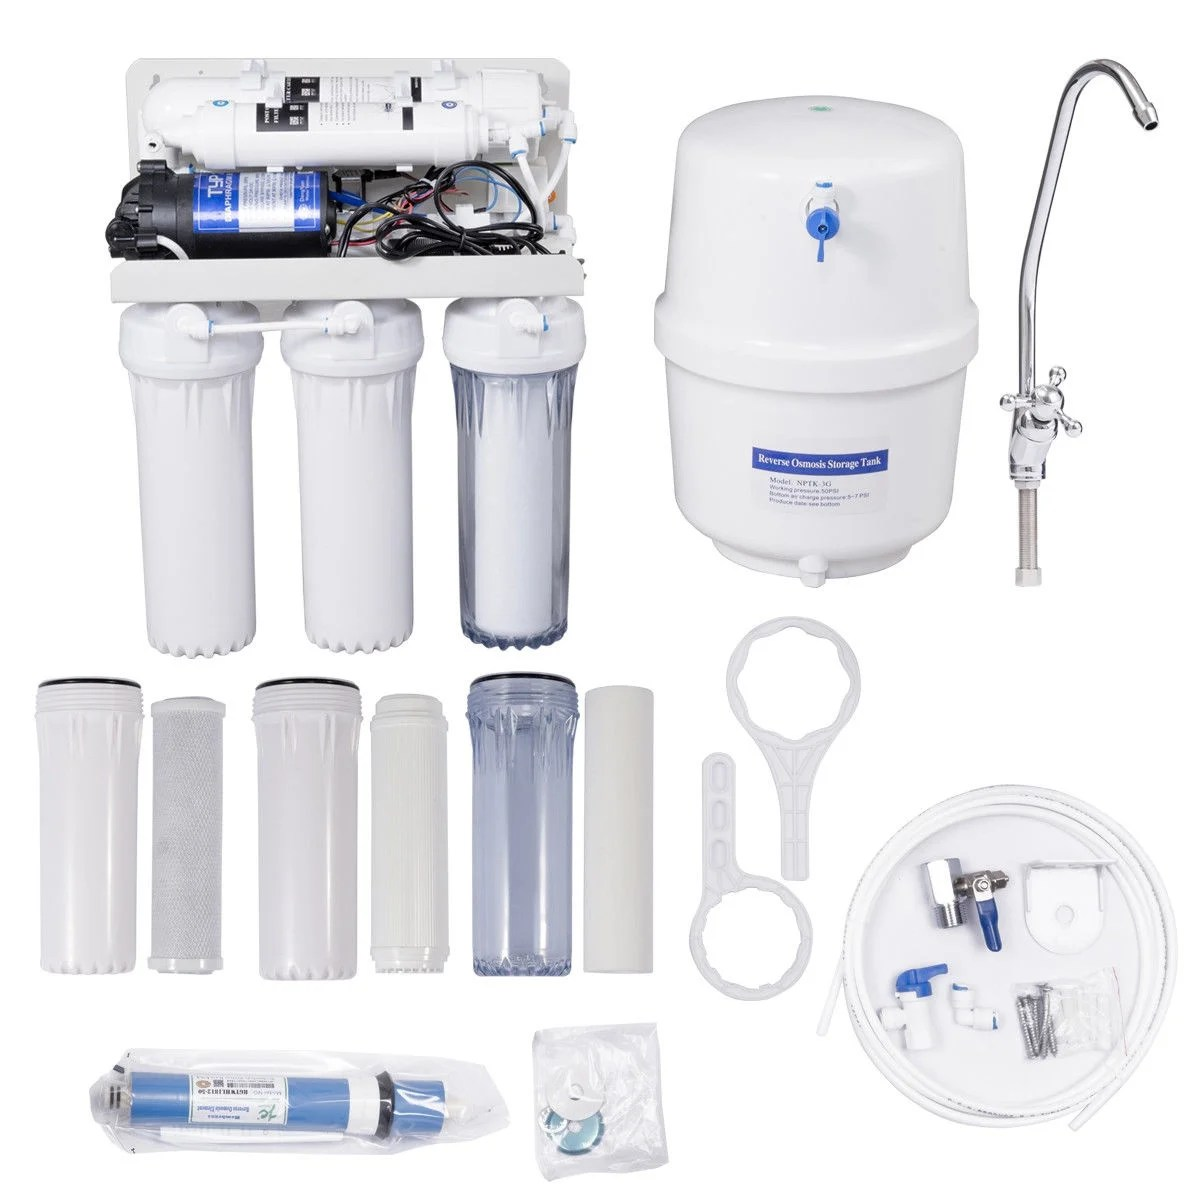 Reverse Osmosis Drinking Water System Costway 5 Stage Ultra Safe Reverse Osmosis Drinking Water Filter System Purifier White